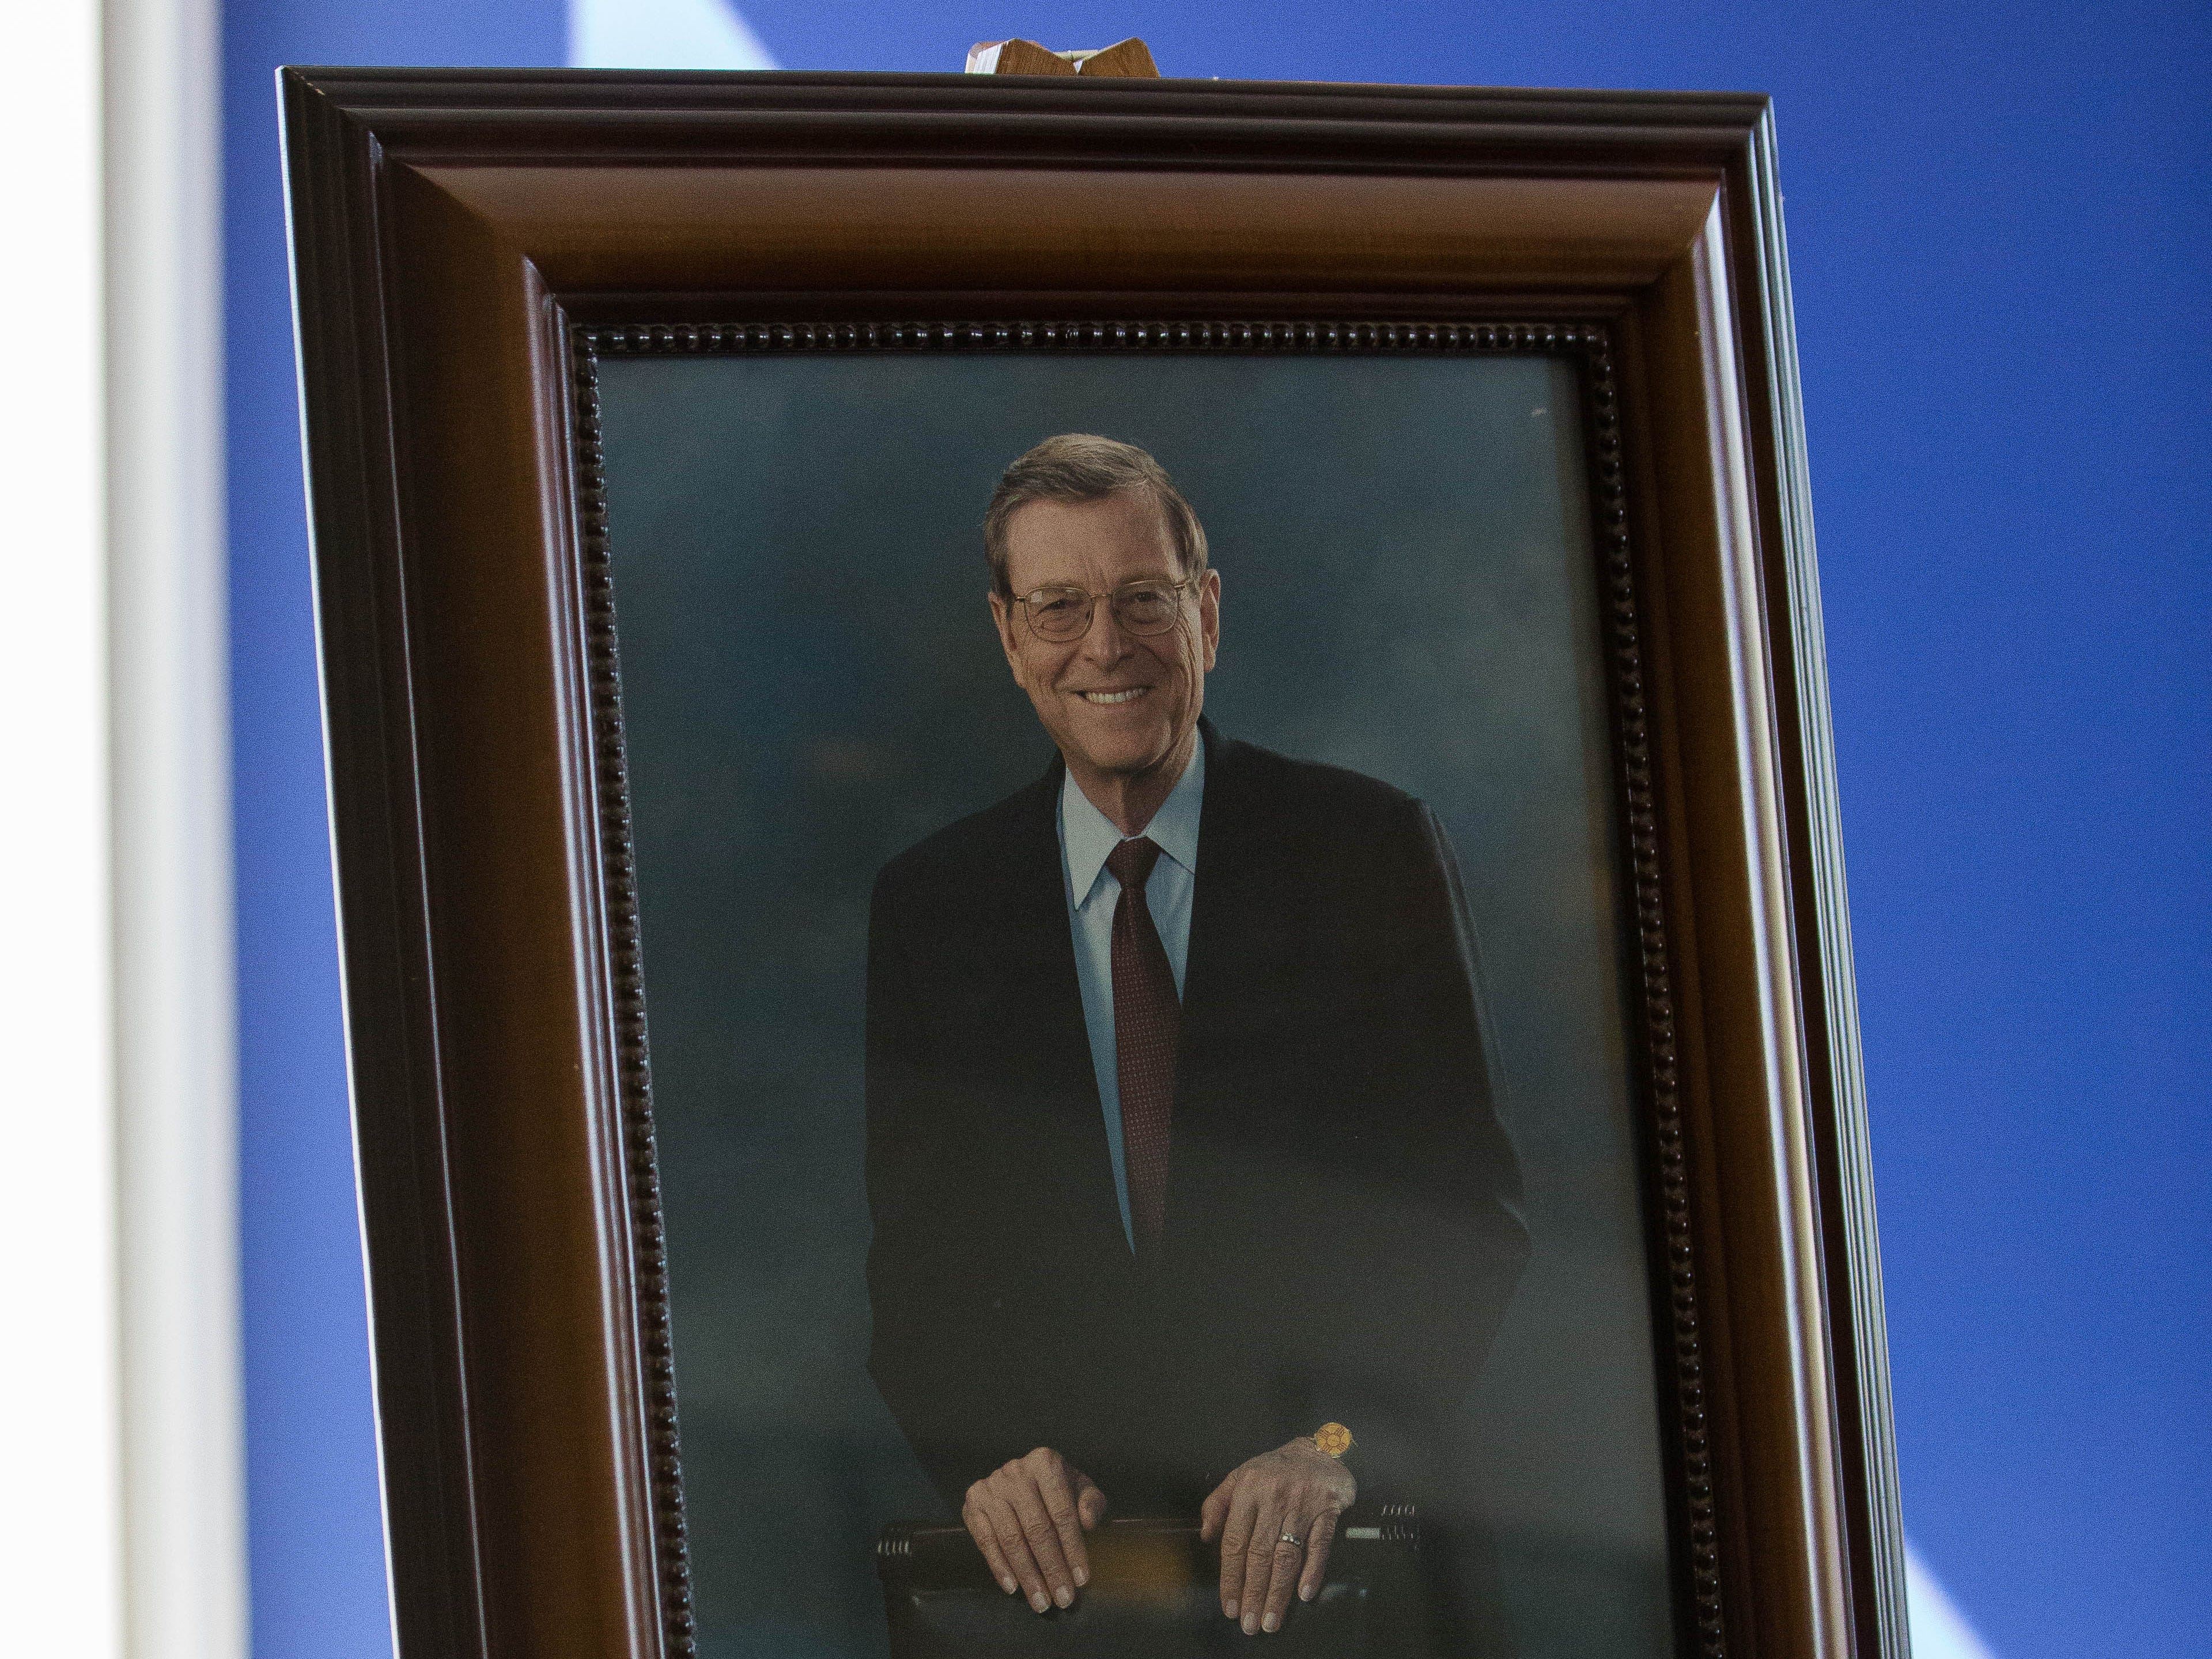 A framed portrait of Pete Domenici, former Senator from New Mexico, welcomes attendees to the 2018 Domenici Public Policy Conference, Wednesday, Sept. 12, 2018 at the Las Cruces Convention Center.